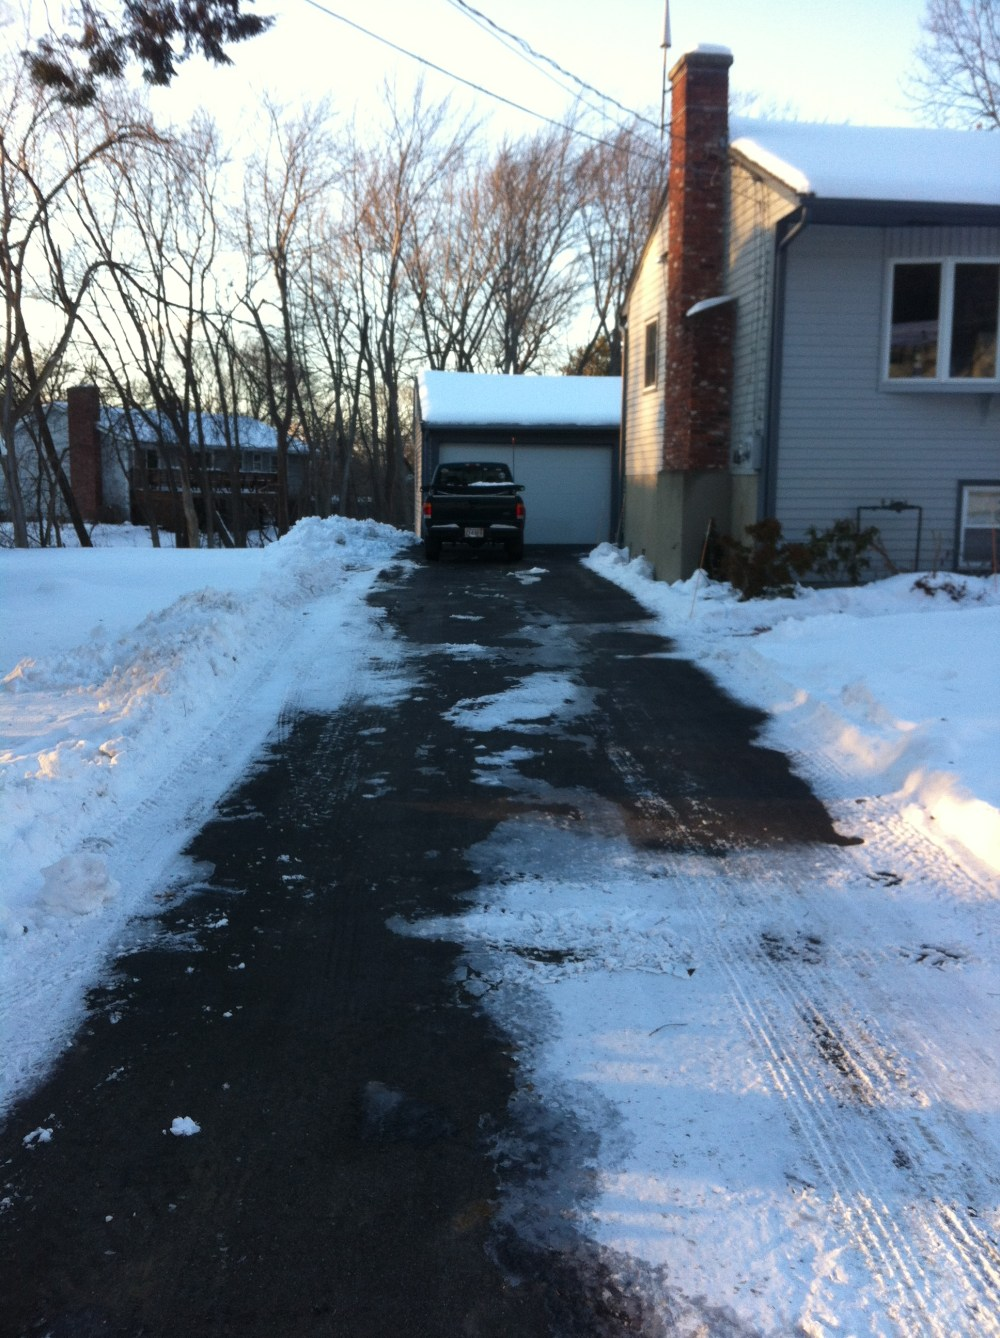 medium resolution of obviously that particular edge is more important to be useful for vehicles to use than to know where the formal driveway edge is for plowing